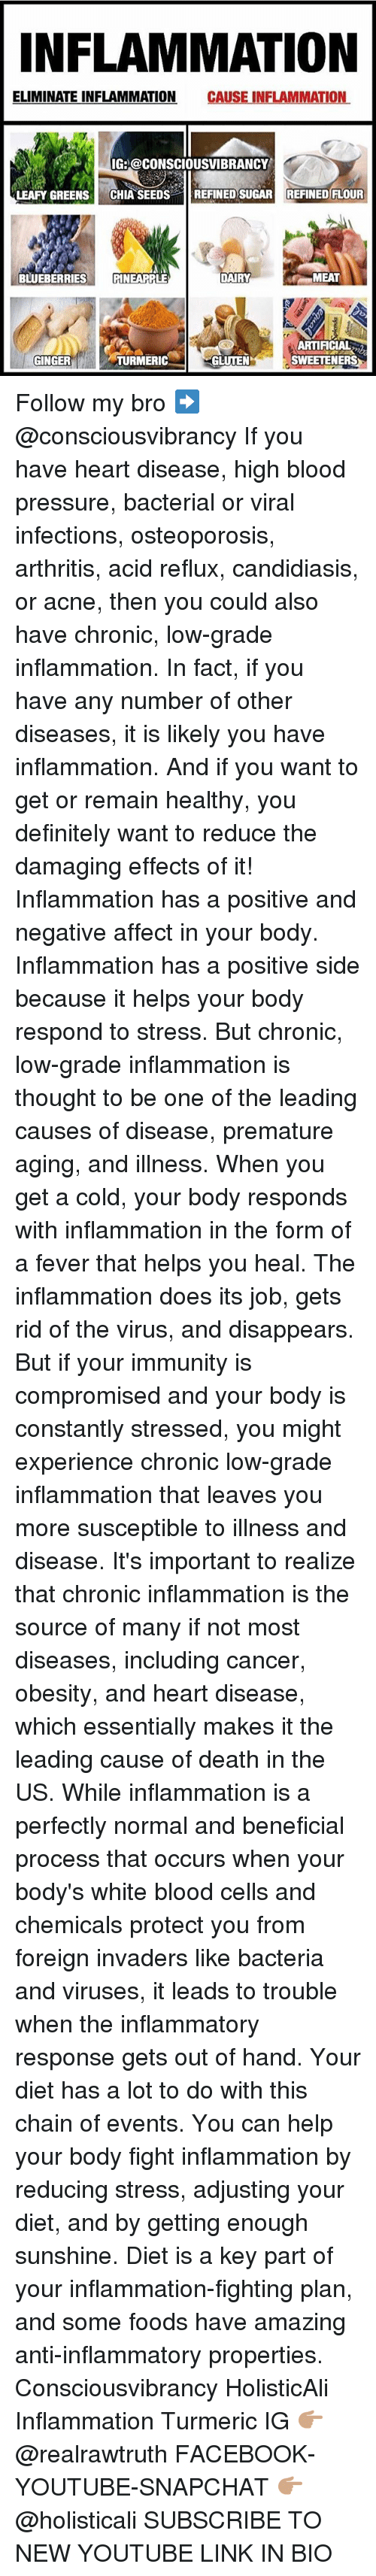 Feveral: NFLAMMATION  ELIMINATE INFLAMMATION CAUSE INFLAMMATION  IG: @CONSCIOUSVIBRANCY  LEAFY GREENS CHIA SEEDSREFINED SUGAR REFINED FLOUR  BLUEBERRIESPINEAPPLE  MEAT  ARTIFICIAL  SWEETENERS  GINGER  TURMERIC  GLUTEN Follow my bro ➡️ @consciousvibrancy If you have heart disease, high blood pressure, bacterial or viral infections, osteoporosis, arthritis, acid reflux, candidiasis, or acne, then you could also have chronic, low-grade inflammation. In fact, if you have any number of other diseases, it is likely you have inflammation. And if you want to get or remain healthy, you definitely want to reduce the damaging effects of it! Inflammation has a positive and negative affect in your body. Inflammation has a positive side because it helps your body respond to stress. But chronic, low-grade inflammation is thought to be one of the leading causes of disease, premature aging, and illness. When you get a cold, your body responds with inflammation in the form of a fever that helps you heal. The inflammation does its job, gets rid of the virus, and disappears. But if your immunity is compromised and your body is constantly stressed, you might experience chronic low-grade inflammation that leaves you more susceptible to illness and disease. It's important to realize that chronic inflammation is the source of many if not most diseases, including cancer, obesity, and heart disease, which essentially makes it the leading cause of death in the US. While inflammation is a perfectly normal and beneficial process that occurs when your body's white blood cells and chemicals protect you from foreign invaders like bacteria and viruses, it leads to trouble when the inflammatory response gets out of hand. Your diet has a lot to do with this chain of events. You can help your body fight inflammation by reducing stress, adjusting your diet, and by getting enough sunshine. Diet is a key part of your inflammation-fighting plan, and some foods have amazing anti-inflammatory properties. Co